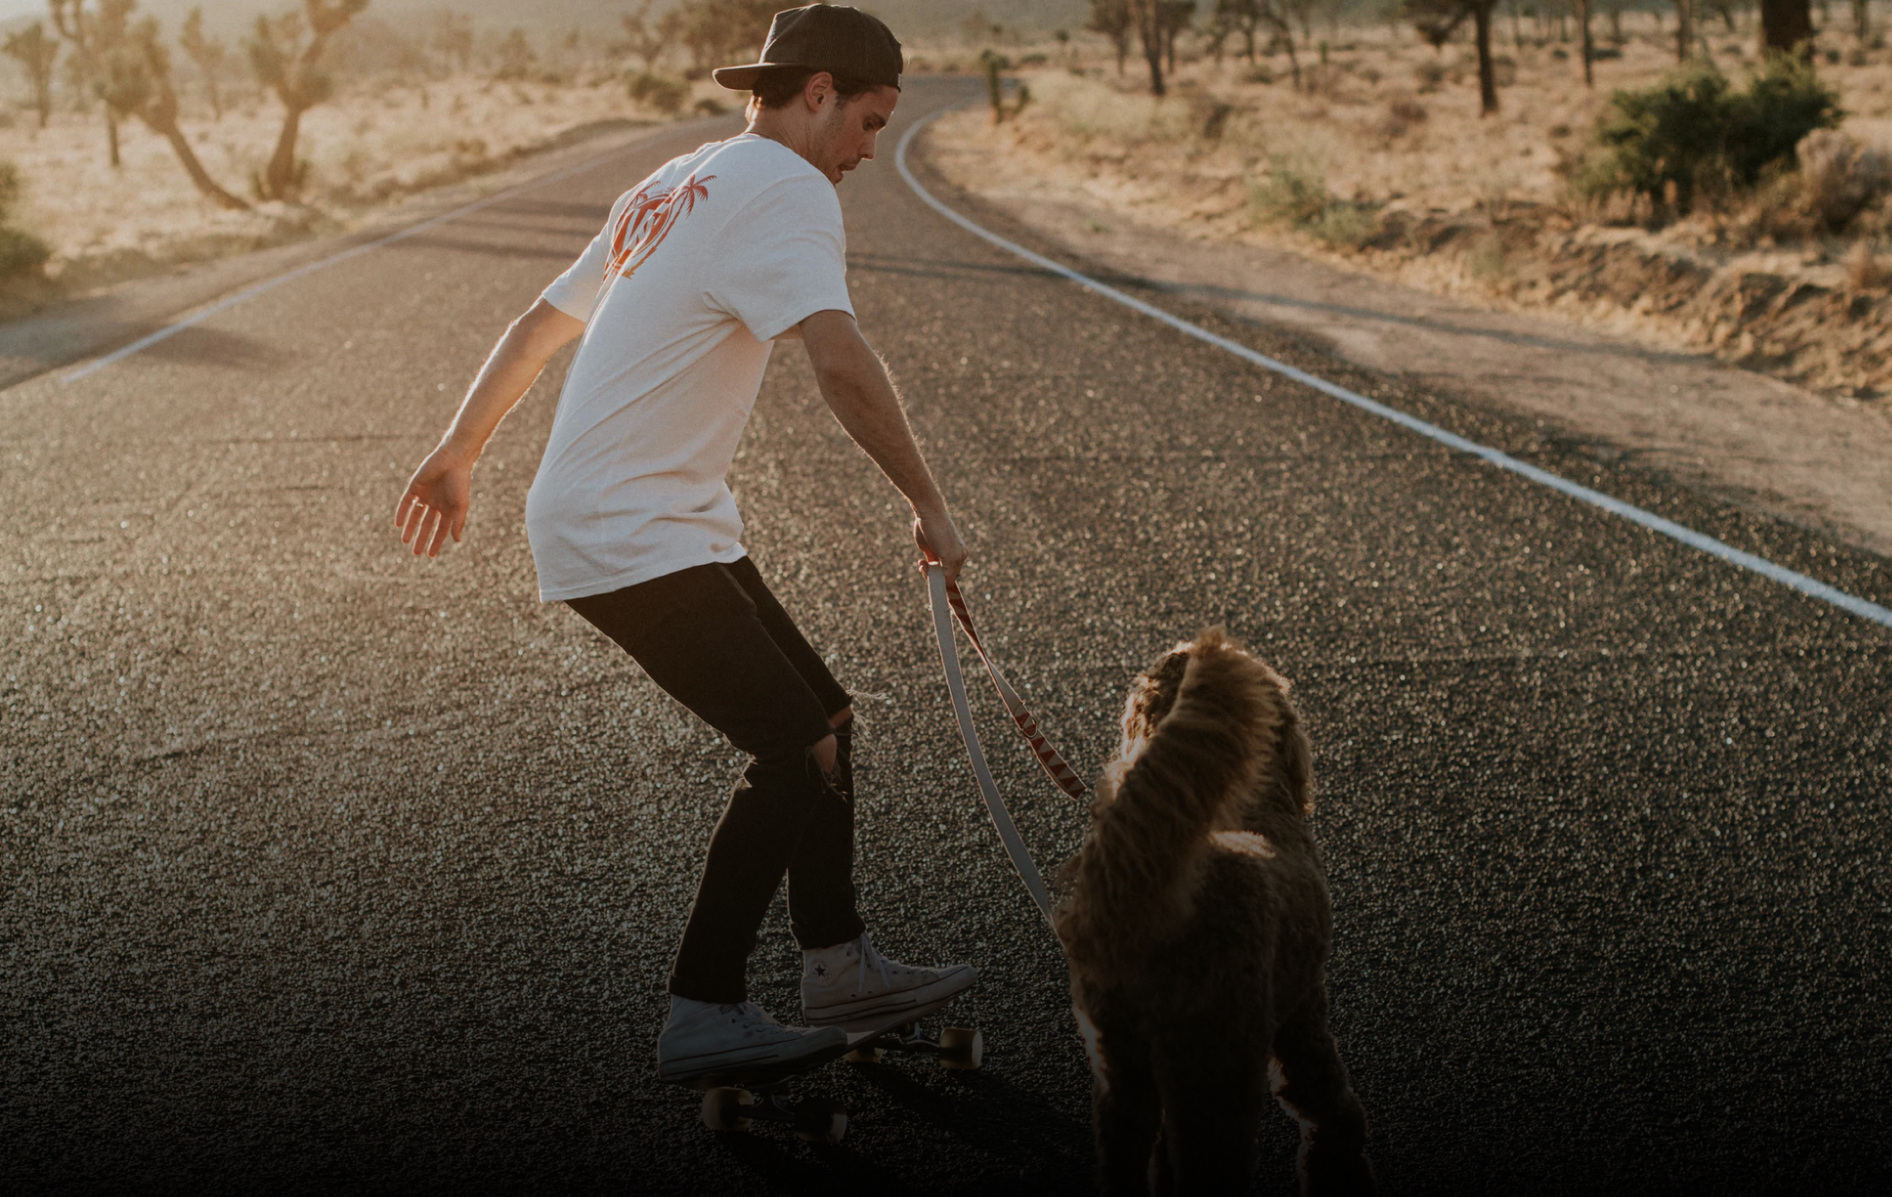 Man skateboarding with dog on a desert road